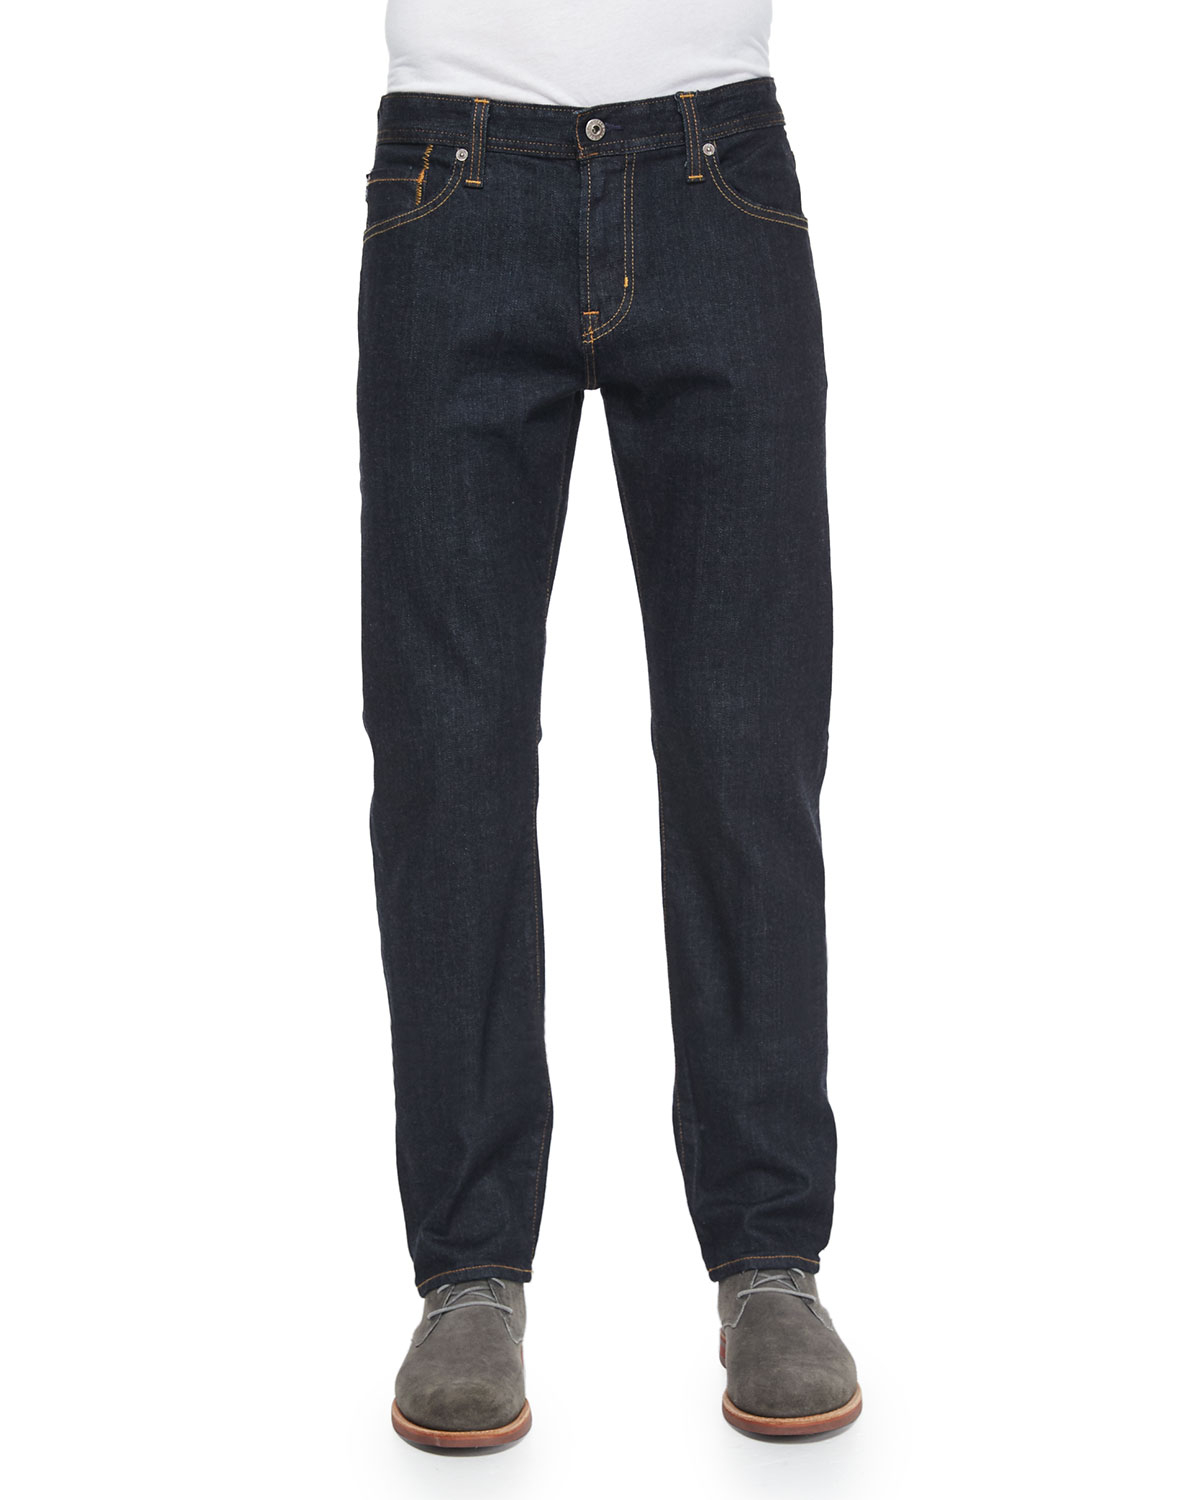 Find great deals on eBay for dark wash skinny jeans. Shop with confidence.